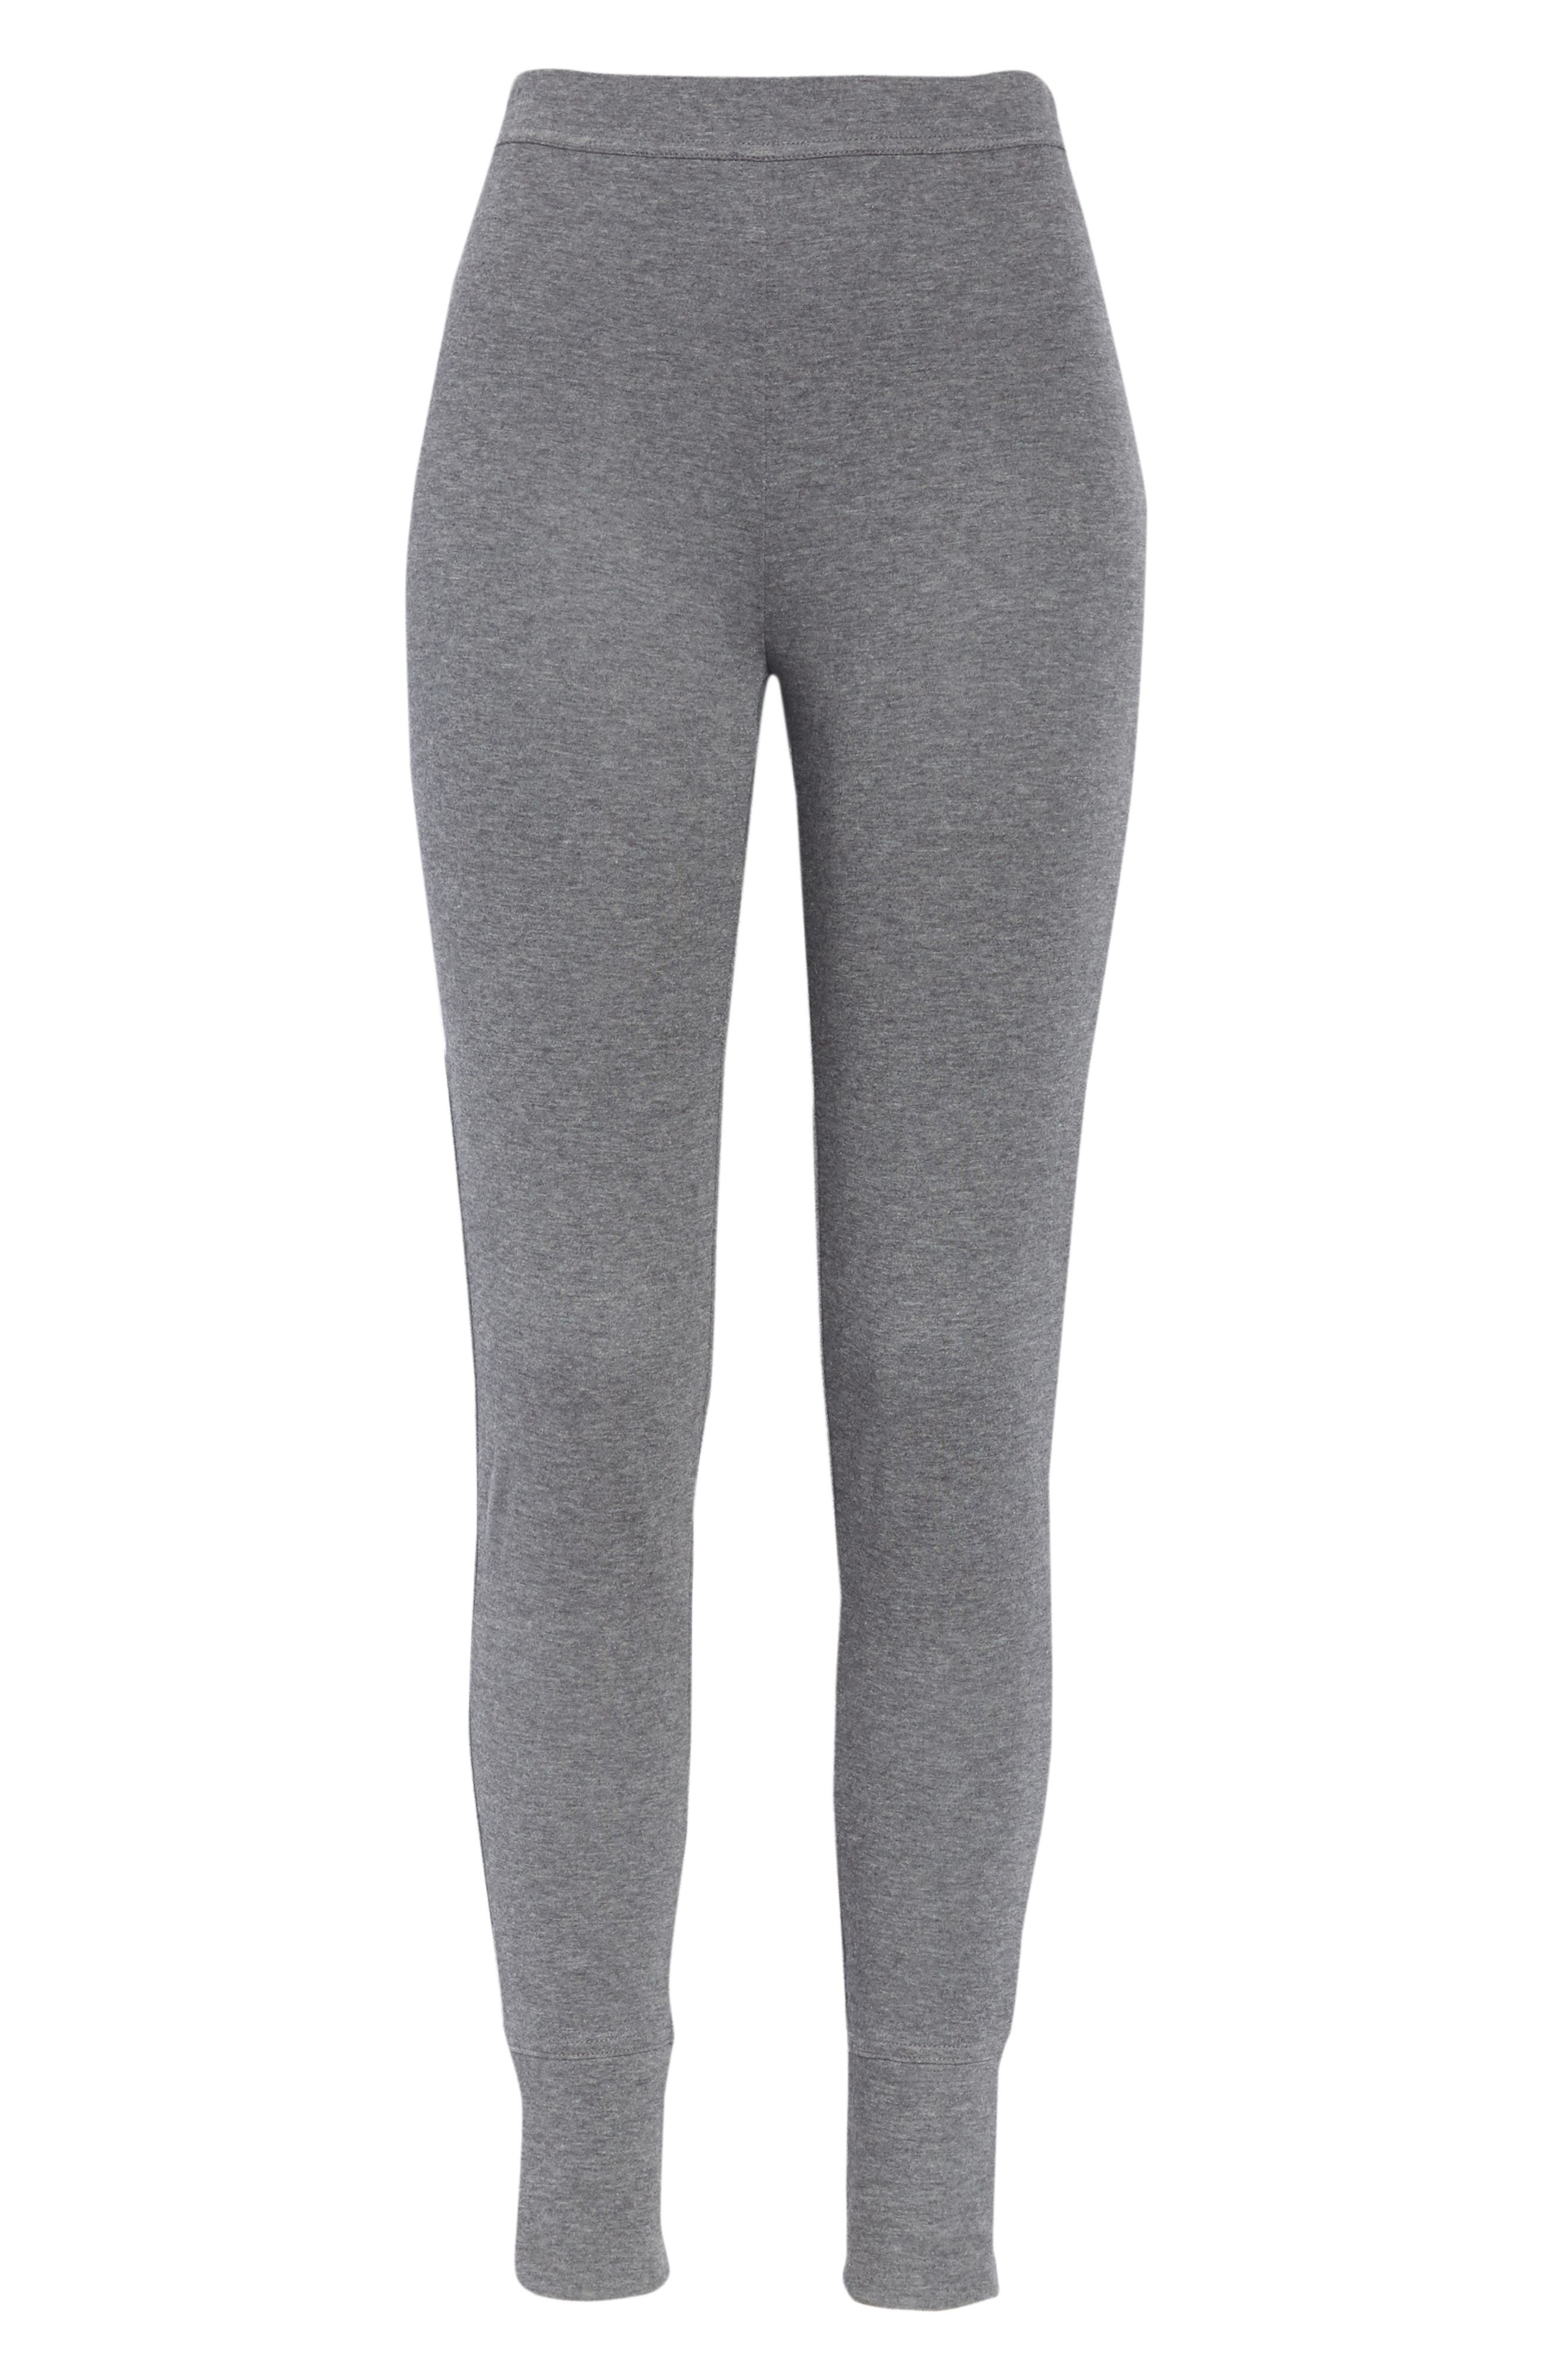 Heathered Cotton Blend Leggings,                             Alternate thumbnail 6, color,                             HEATHER CHARCOAL